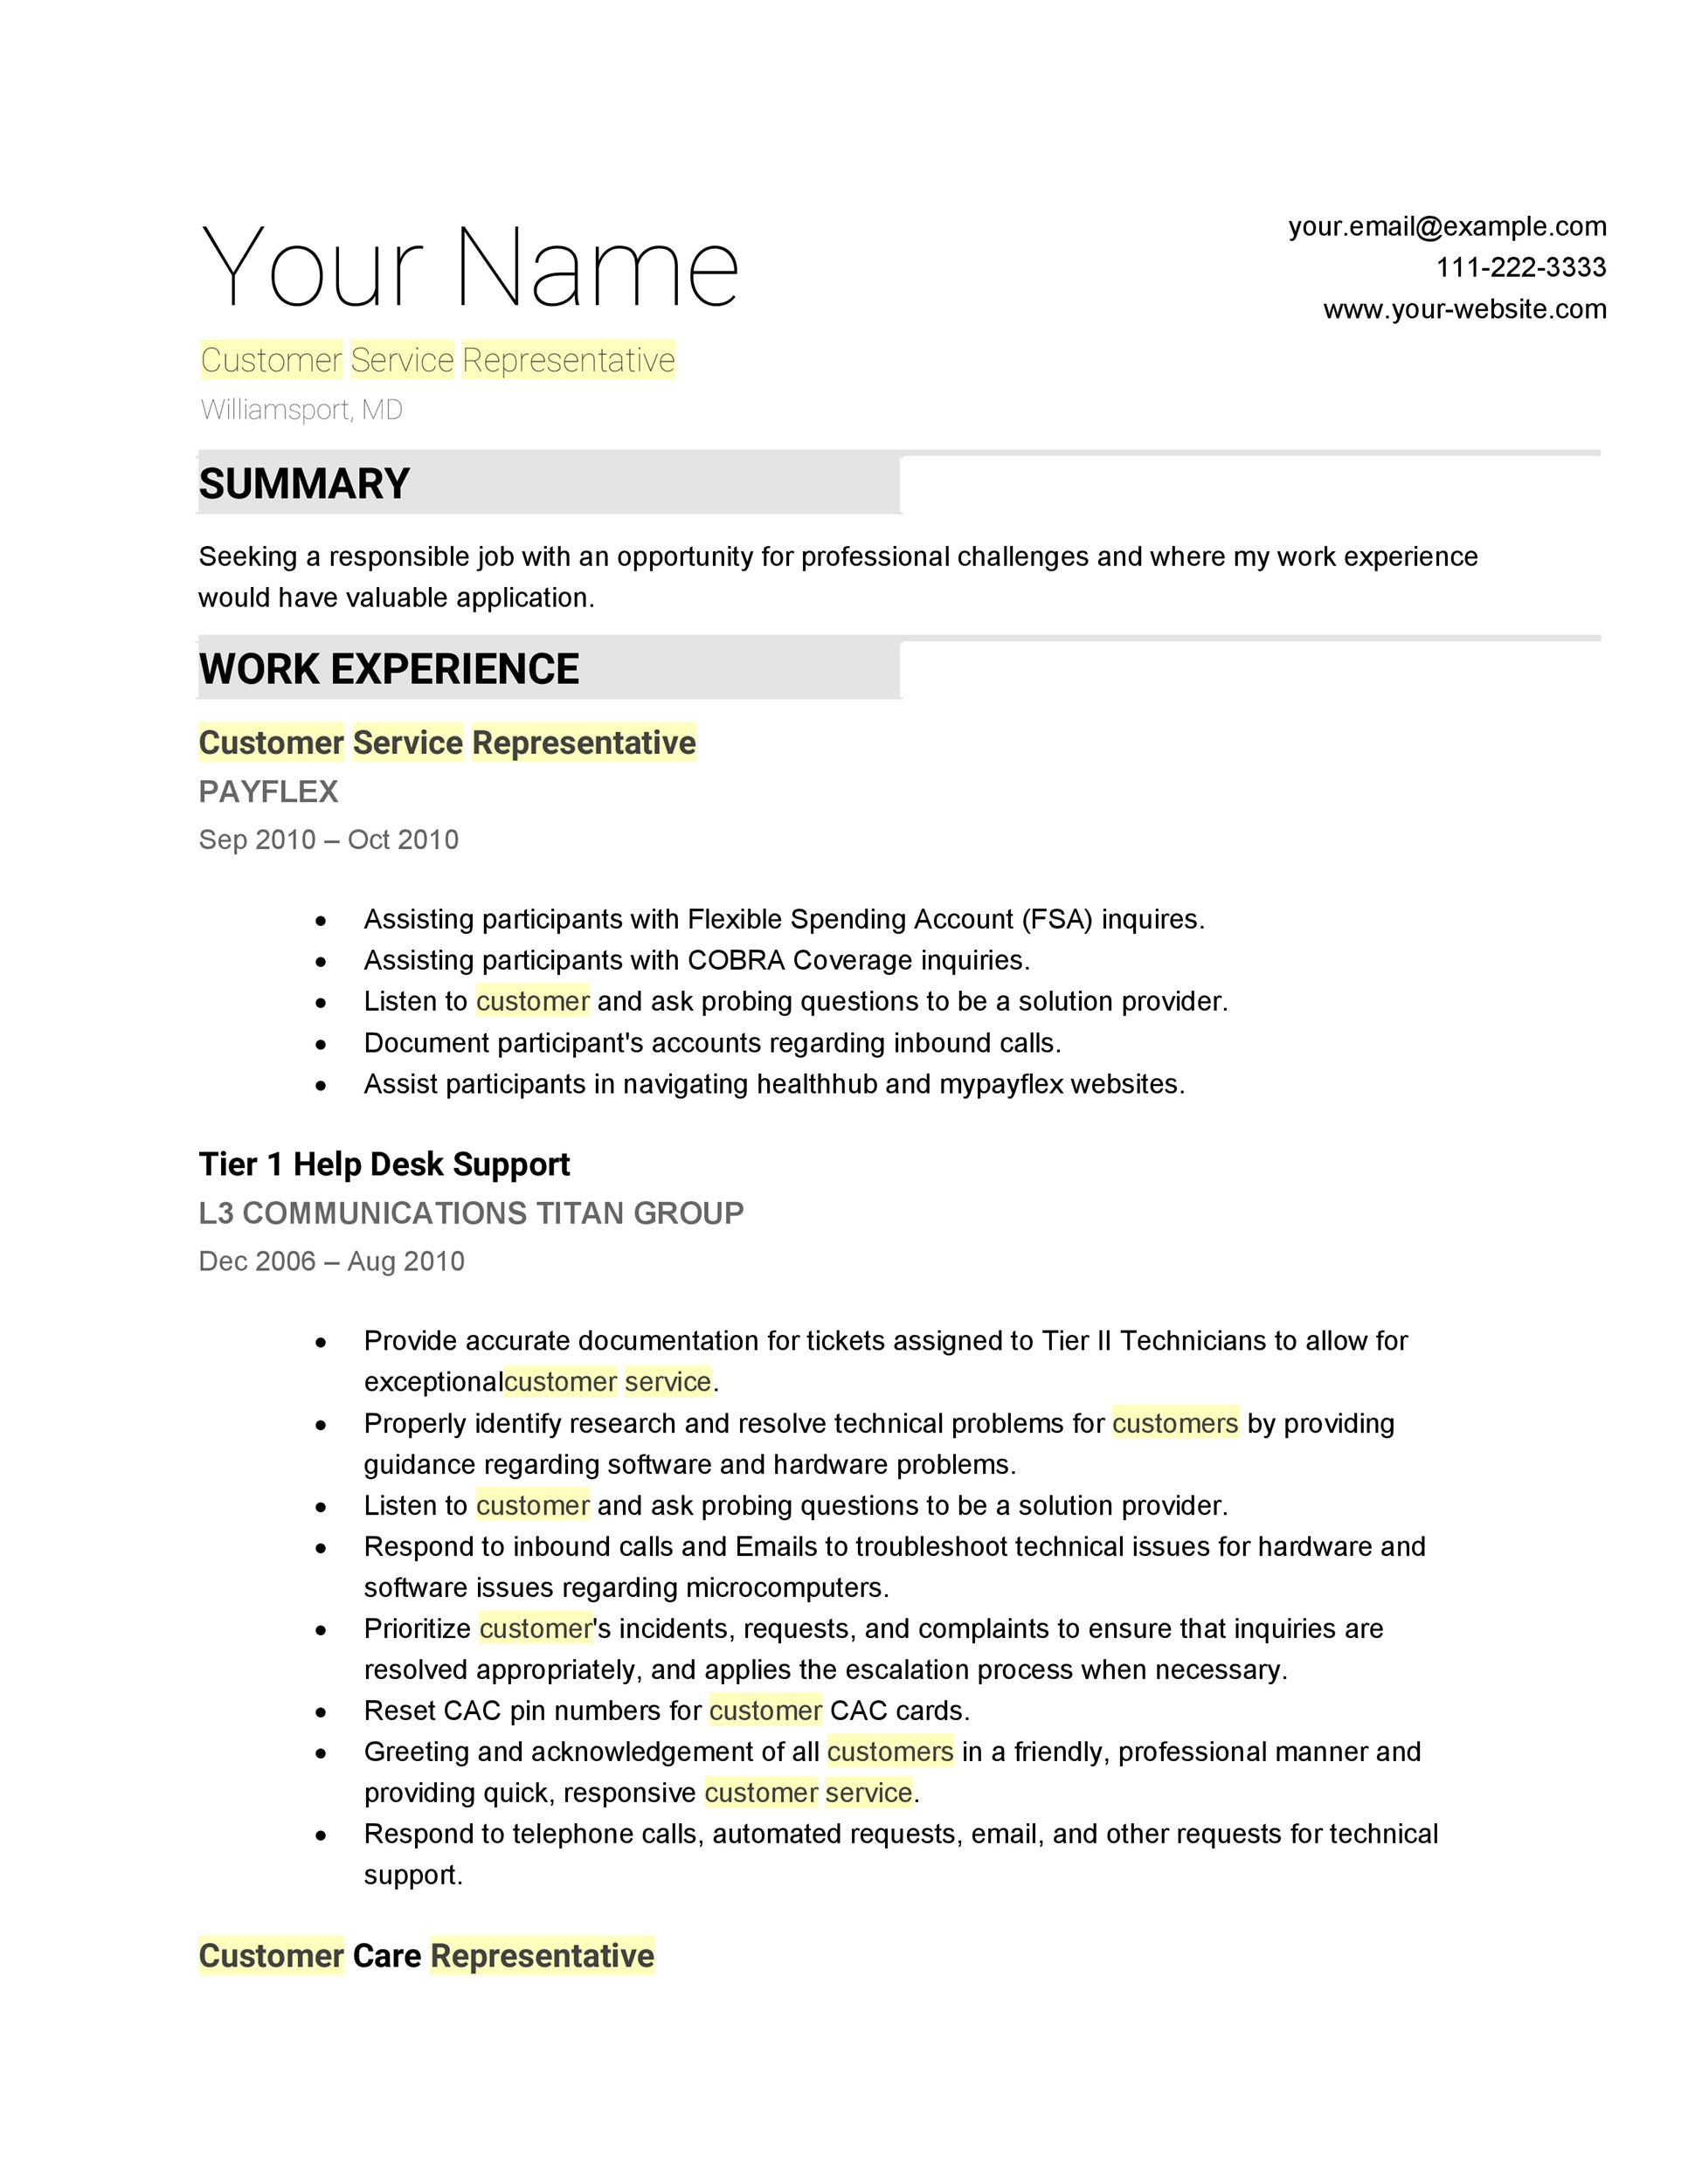 30+ Customer Service Resume Examples - Template Lab - fill in resume templates